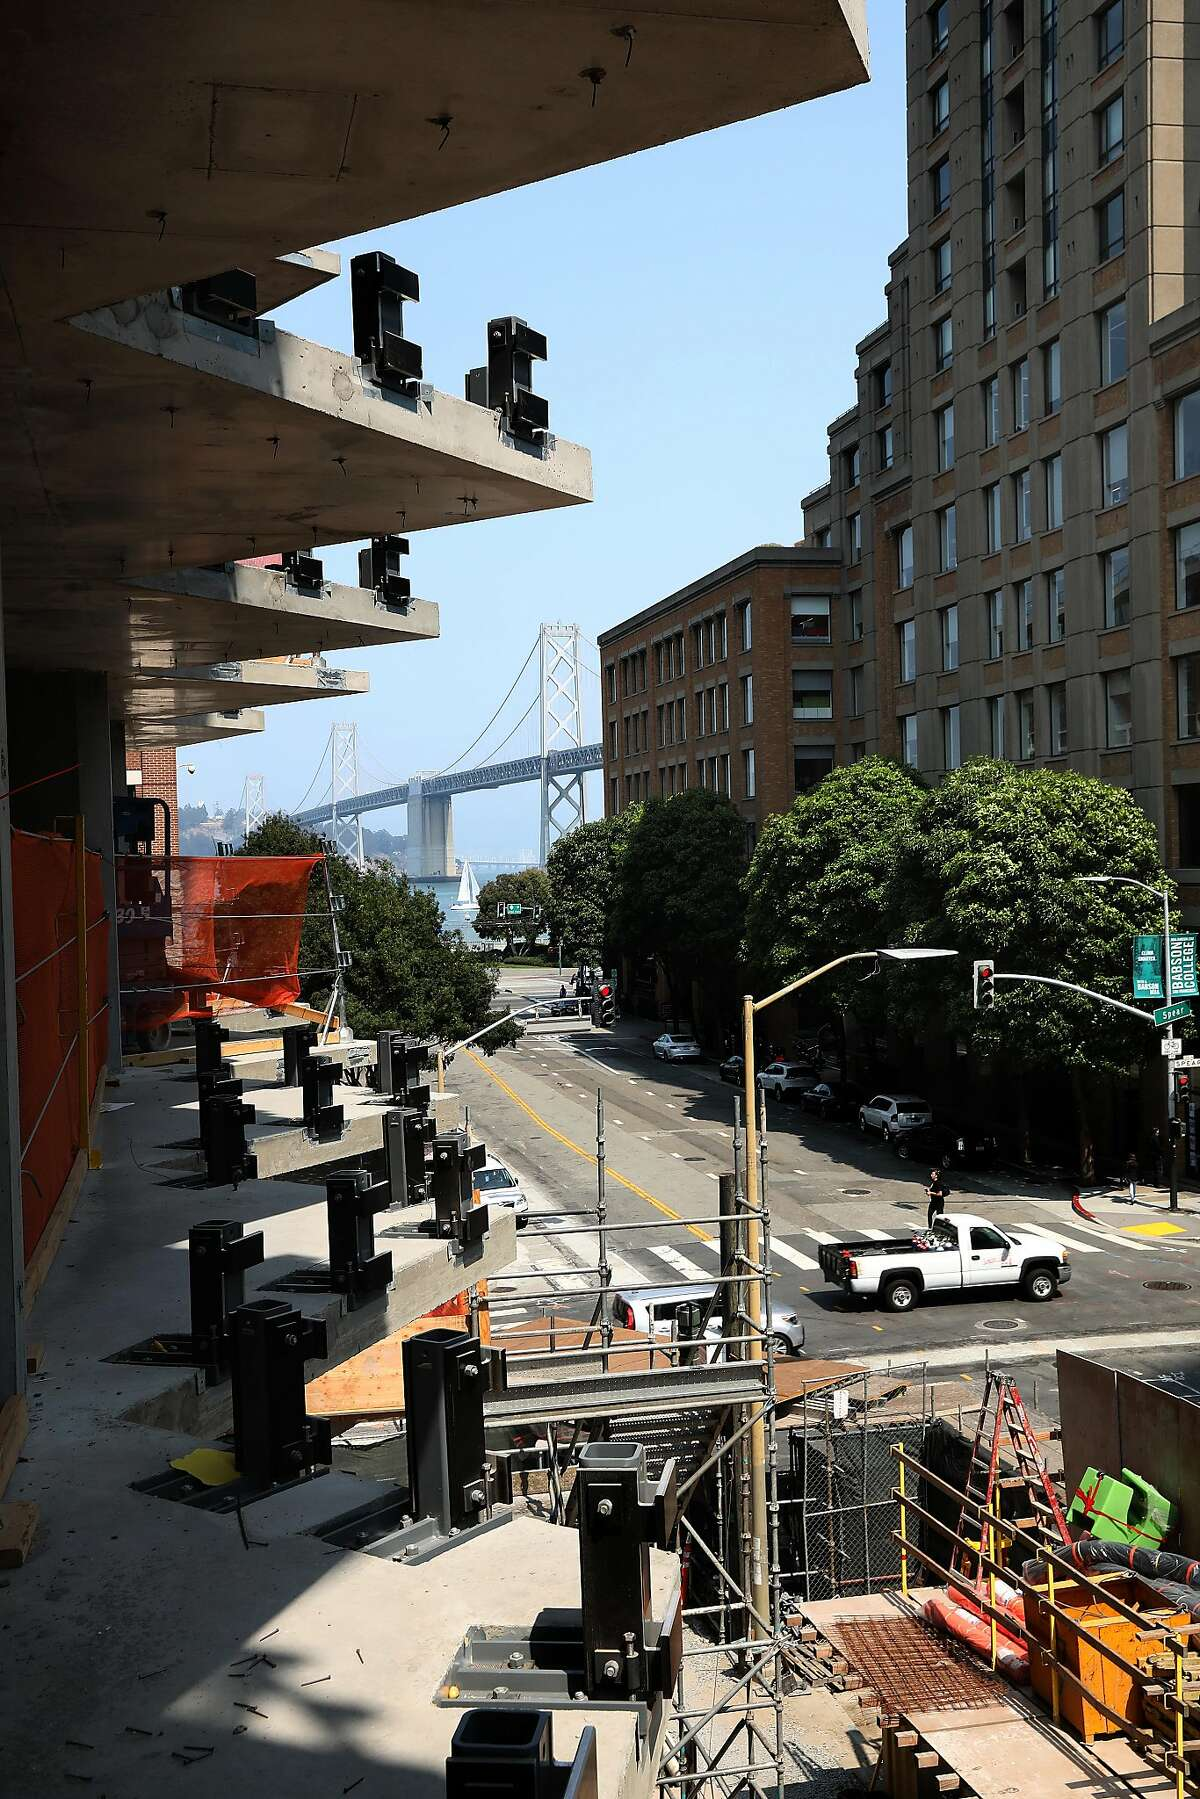 View of where windows will be placed at 160 Folsom St., a former parking lot near the Temporary Transbay Transit Center, where a condo tower is under construction on Friday, Aug. 24, 2018 in San Francisco, Calif.